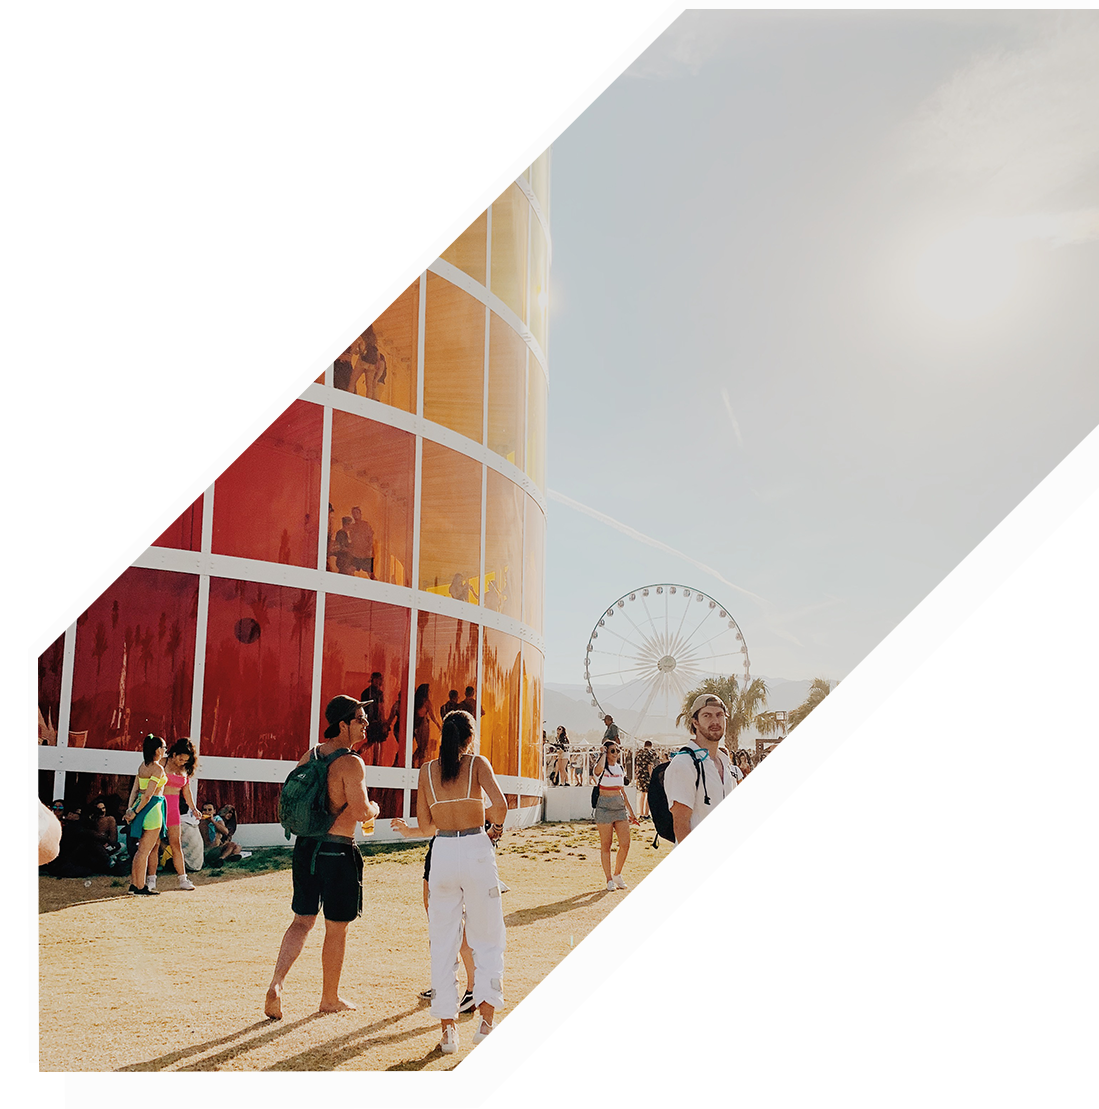 Two people walking on Coachella grounds next to a large orange tower.